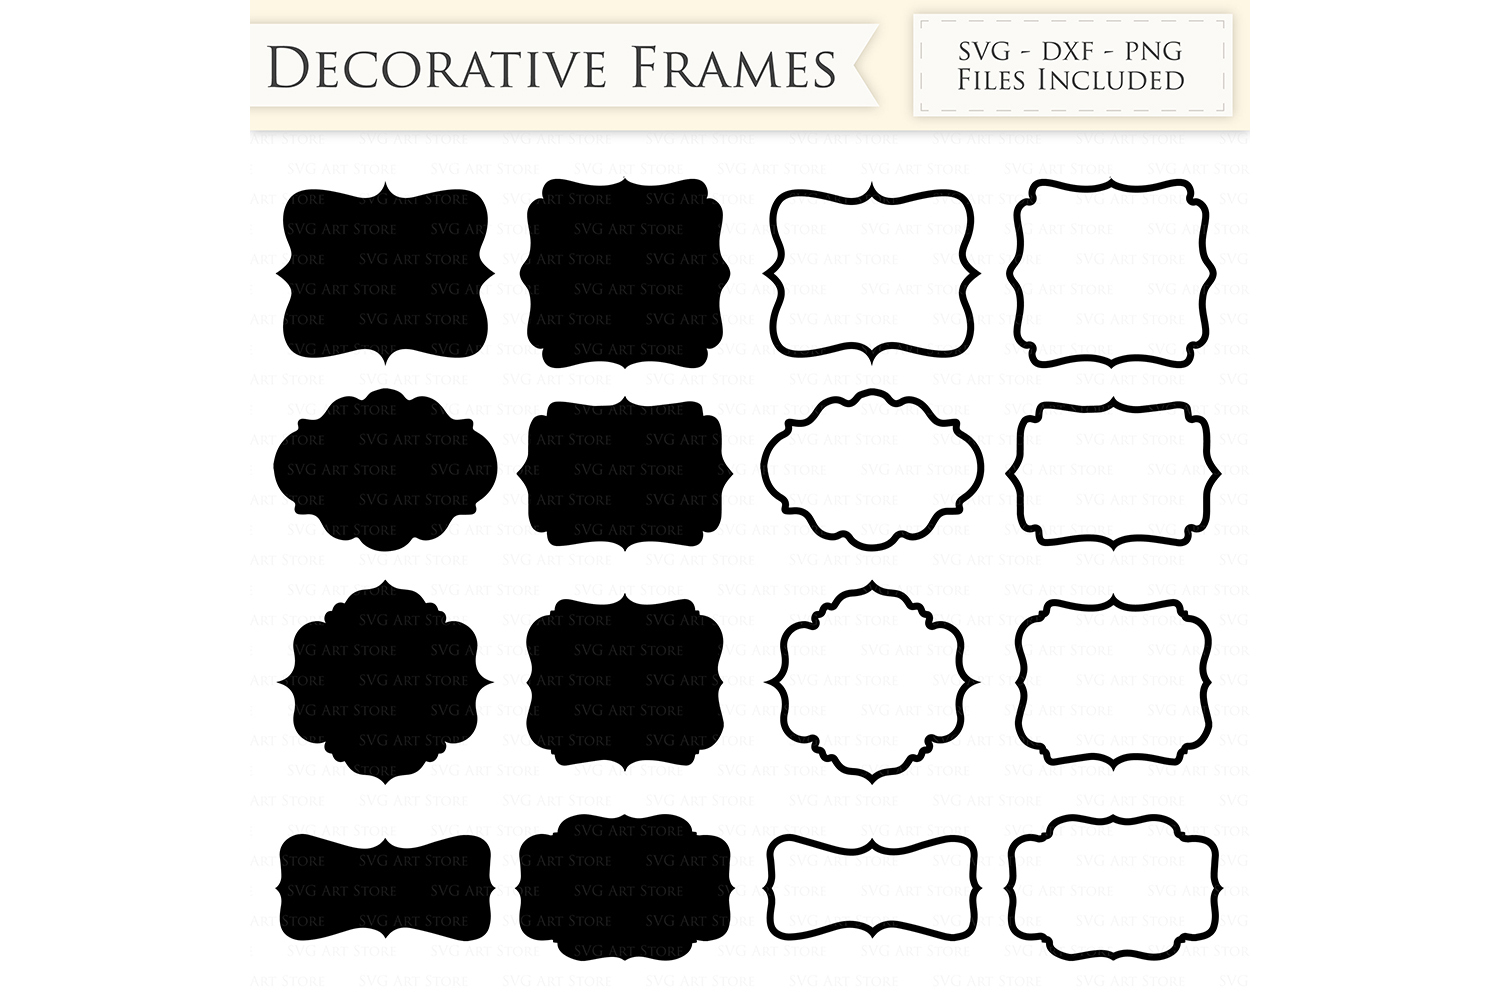 Decorative Frames SVG Files - Frame Outline, Swirl Frame monogram svg cutting files for Cricut and Silhouette - SVG, dxf, png files Included example image 1